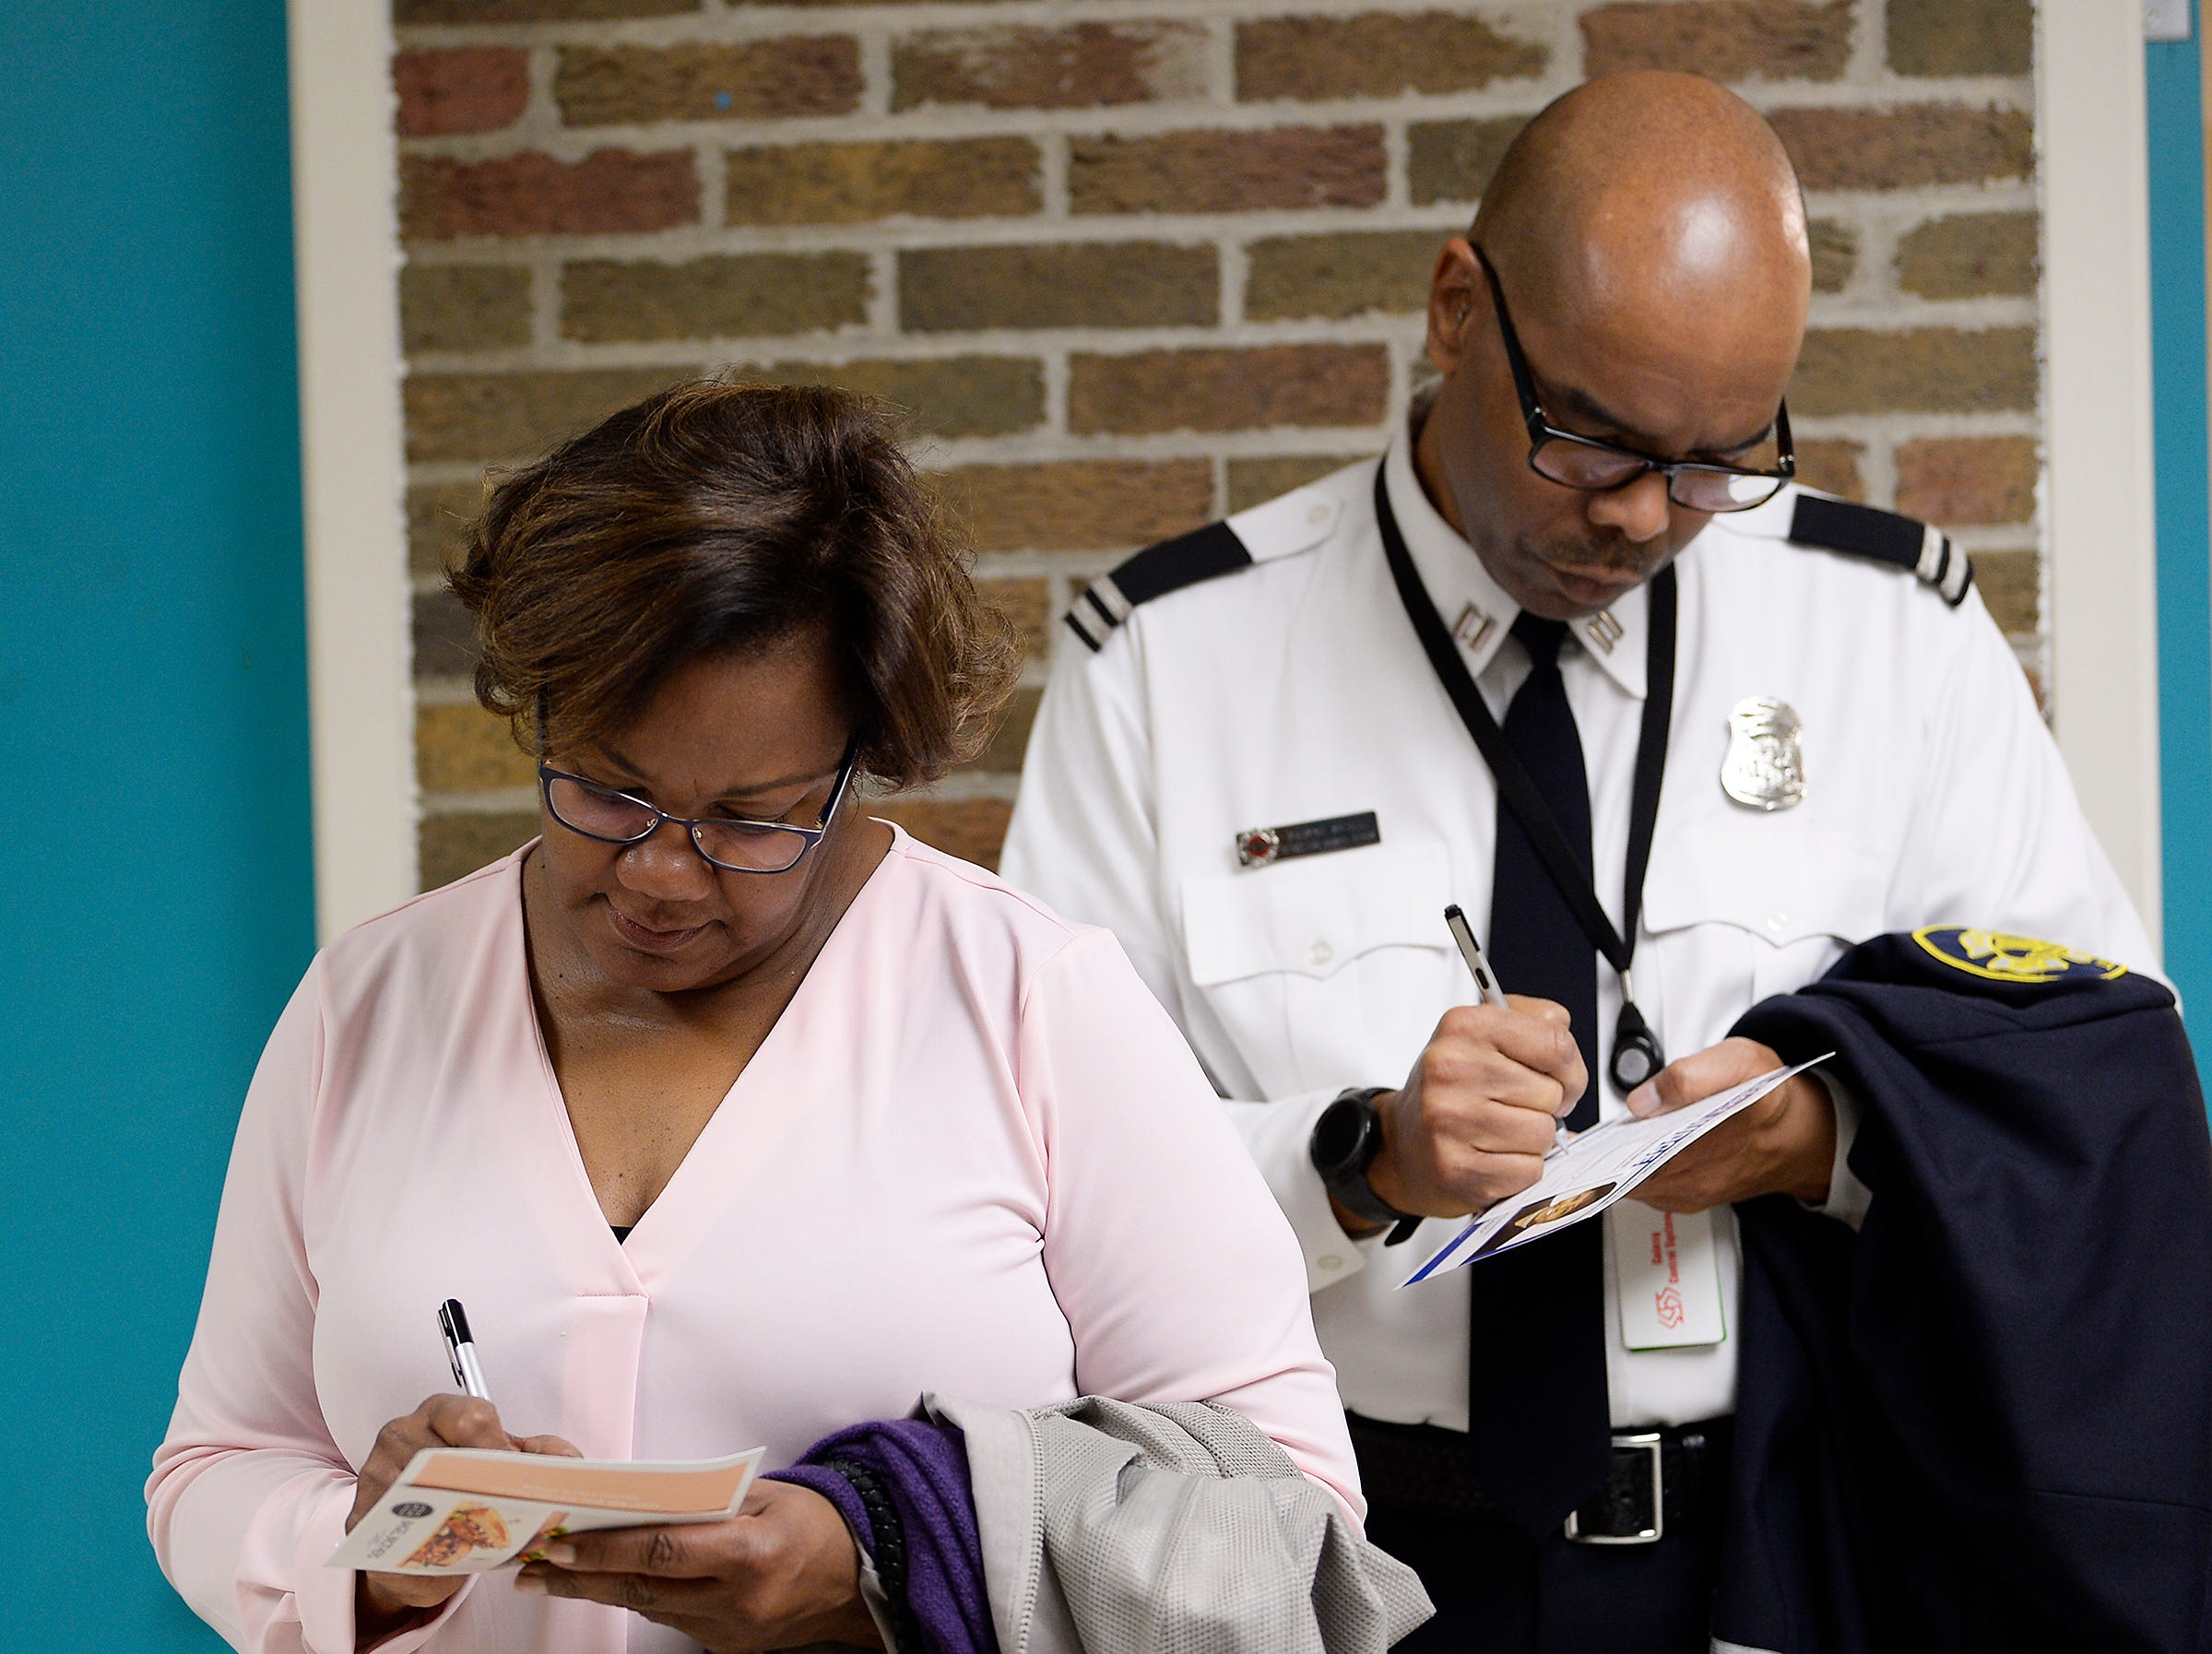 Kelly Small and husband Dwayne Small of Southfield fill out voting cards while waiting in line at Adler Elementary School in Southfield.